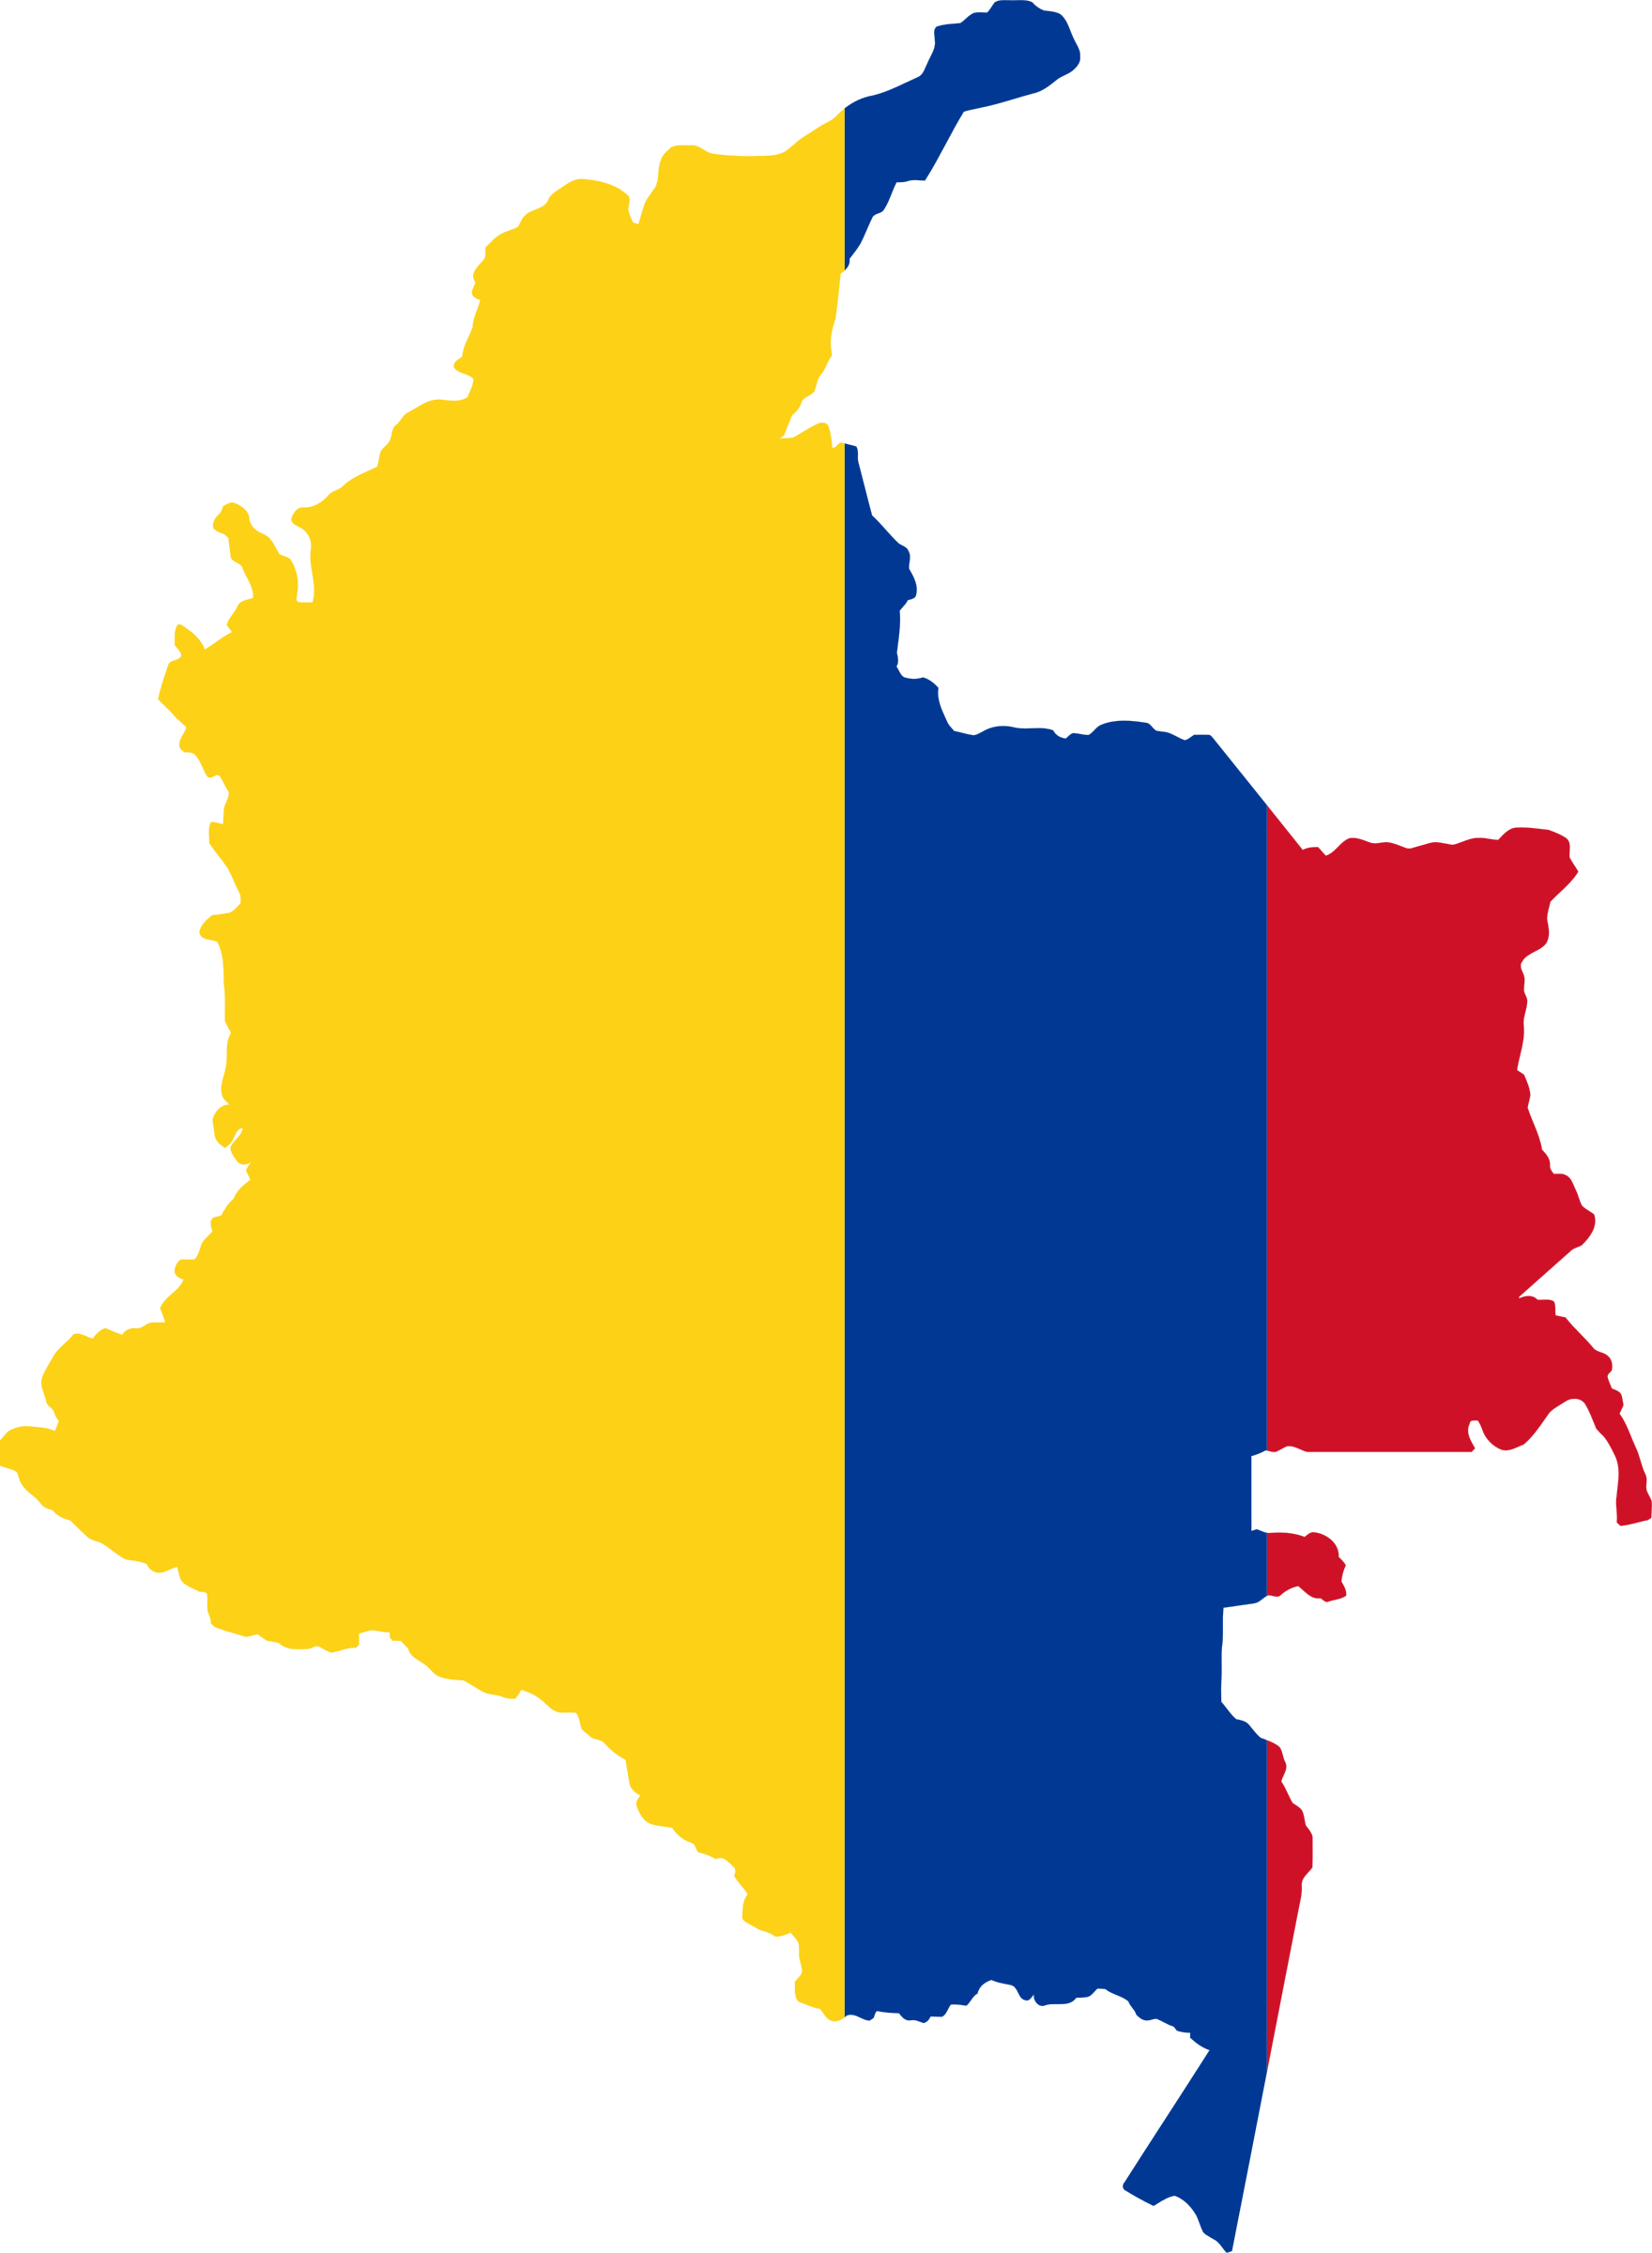 Colombia map png. Flag icons free and